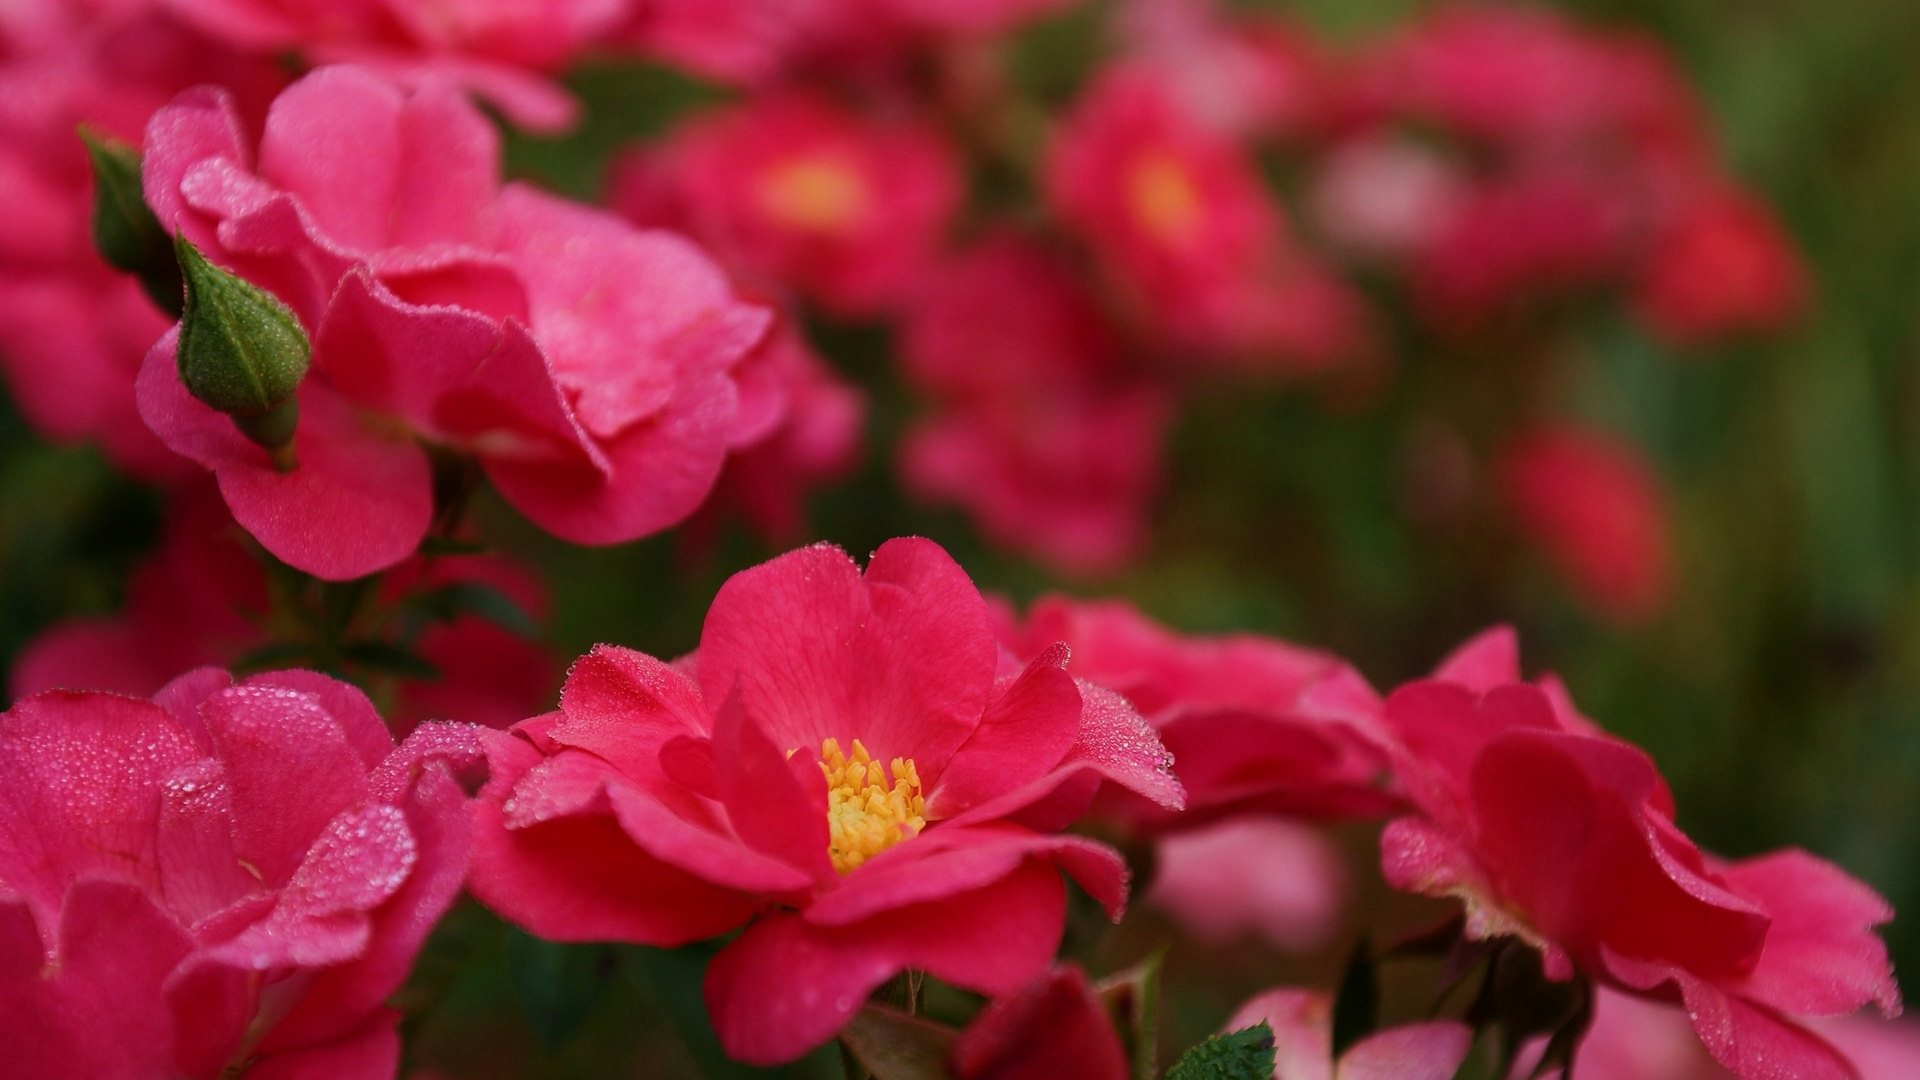 water drops on flowers wallpaper background